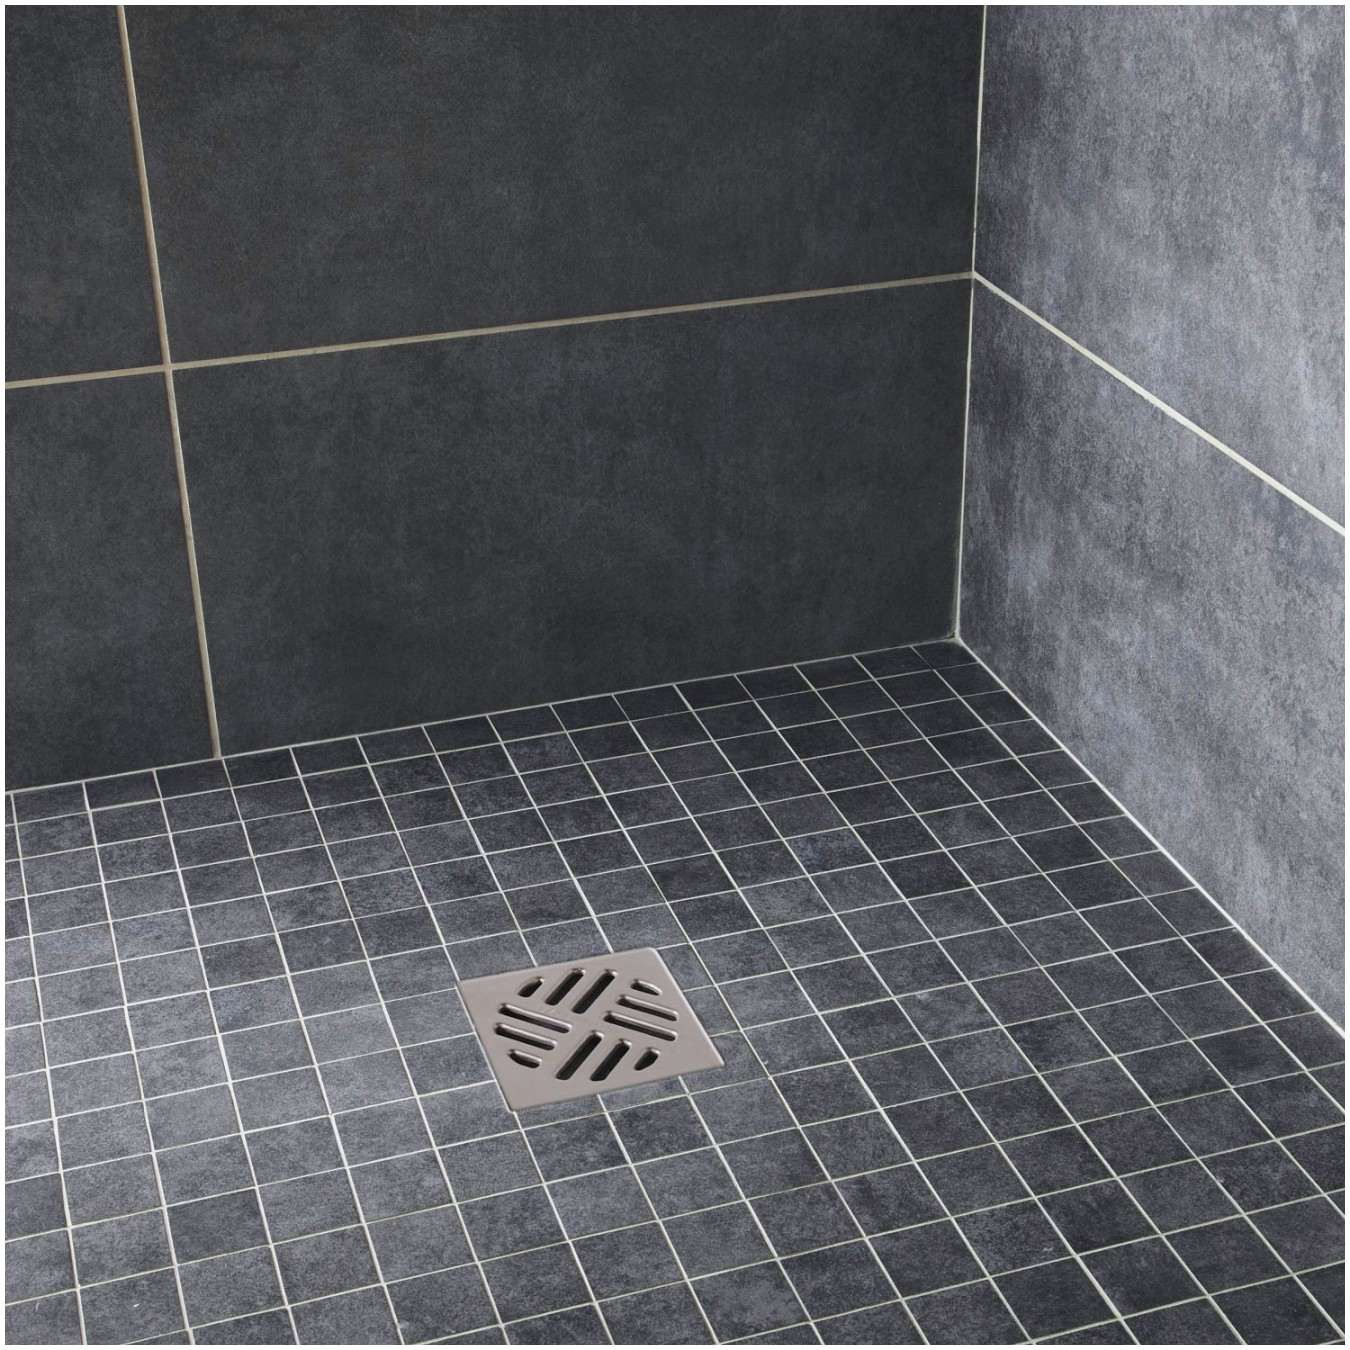 Tapis De Baignoire Antiderapant Leroy Merlin Qui A L Air Cher Mosaic Shower Tile Master Bathroom Renovation Shower Drains